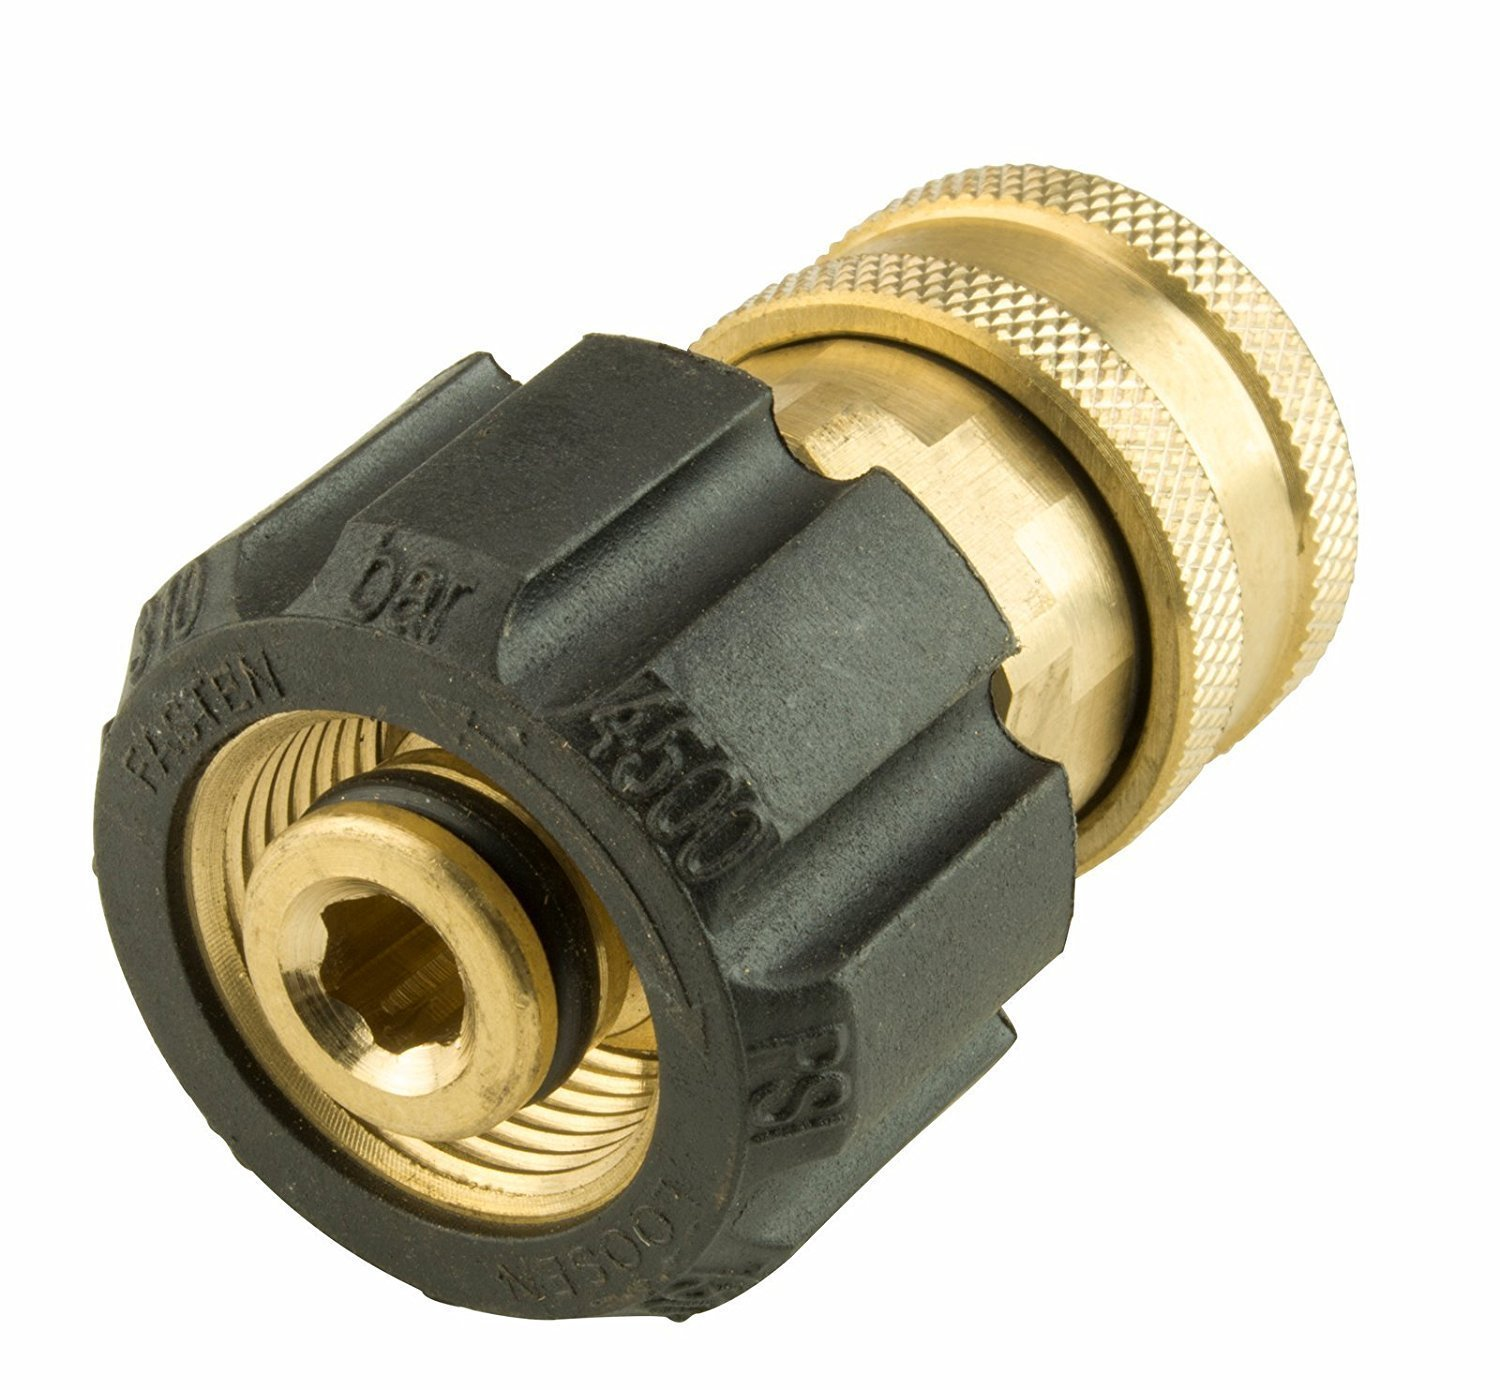 Pressure Washer Twist Connect M22 X 3//8 Quick Disconnect 4500PSI High Pressure Brass Fitting with 300/°F Max Temp